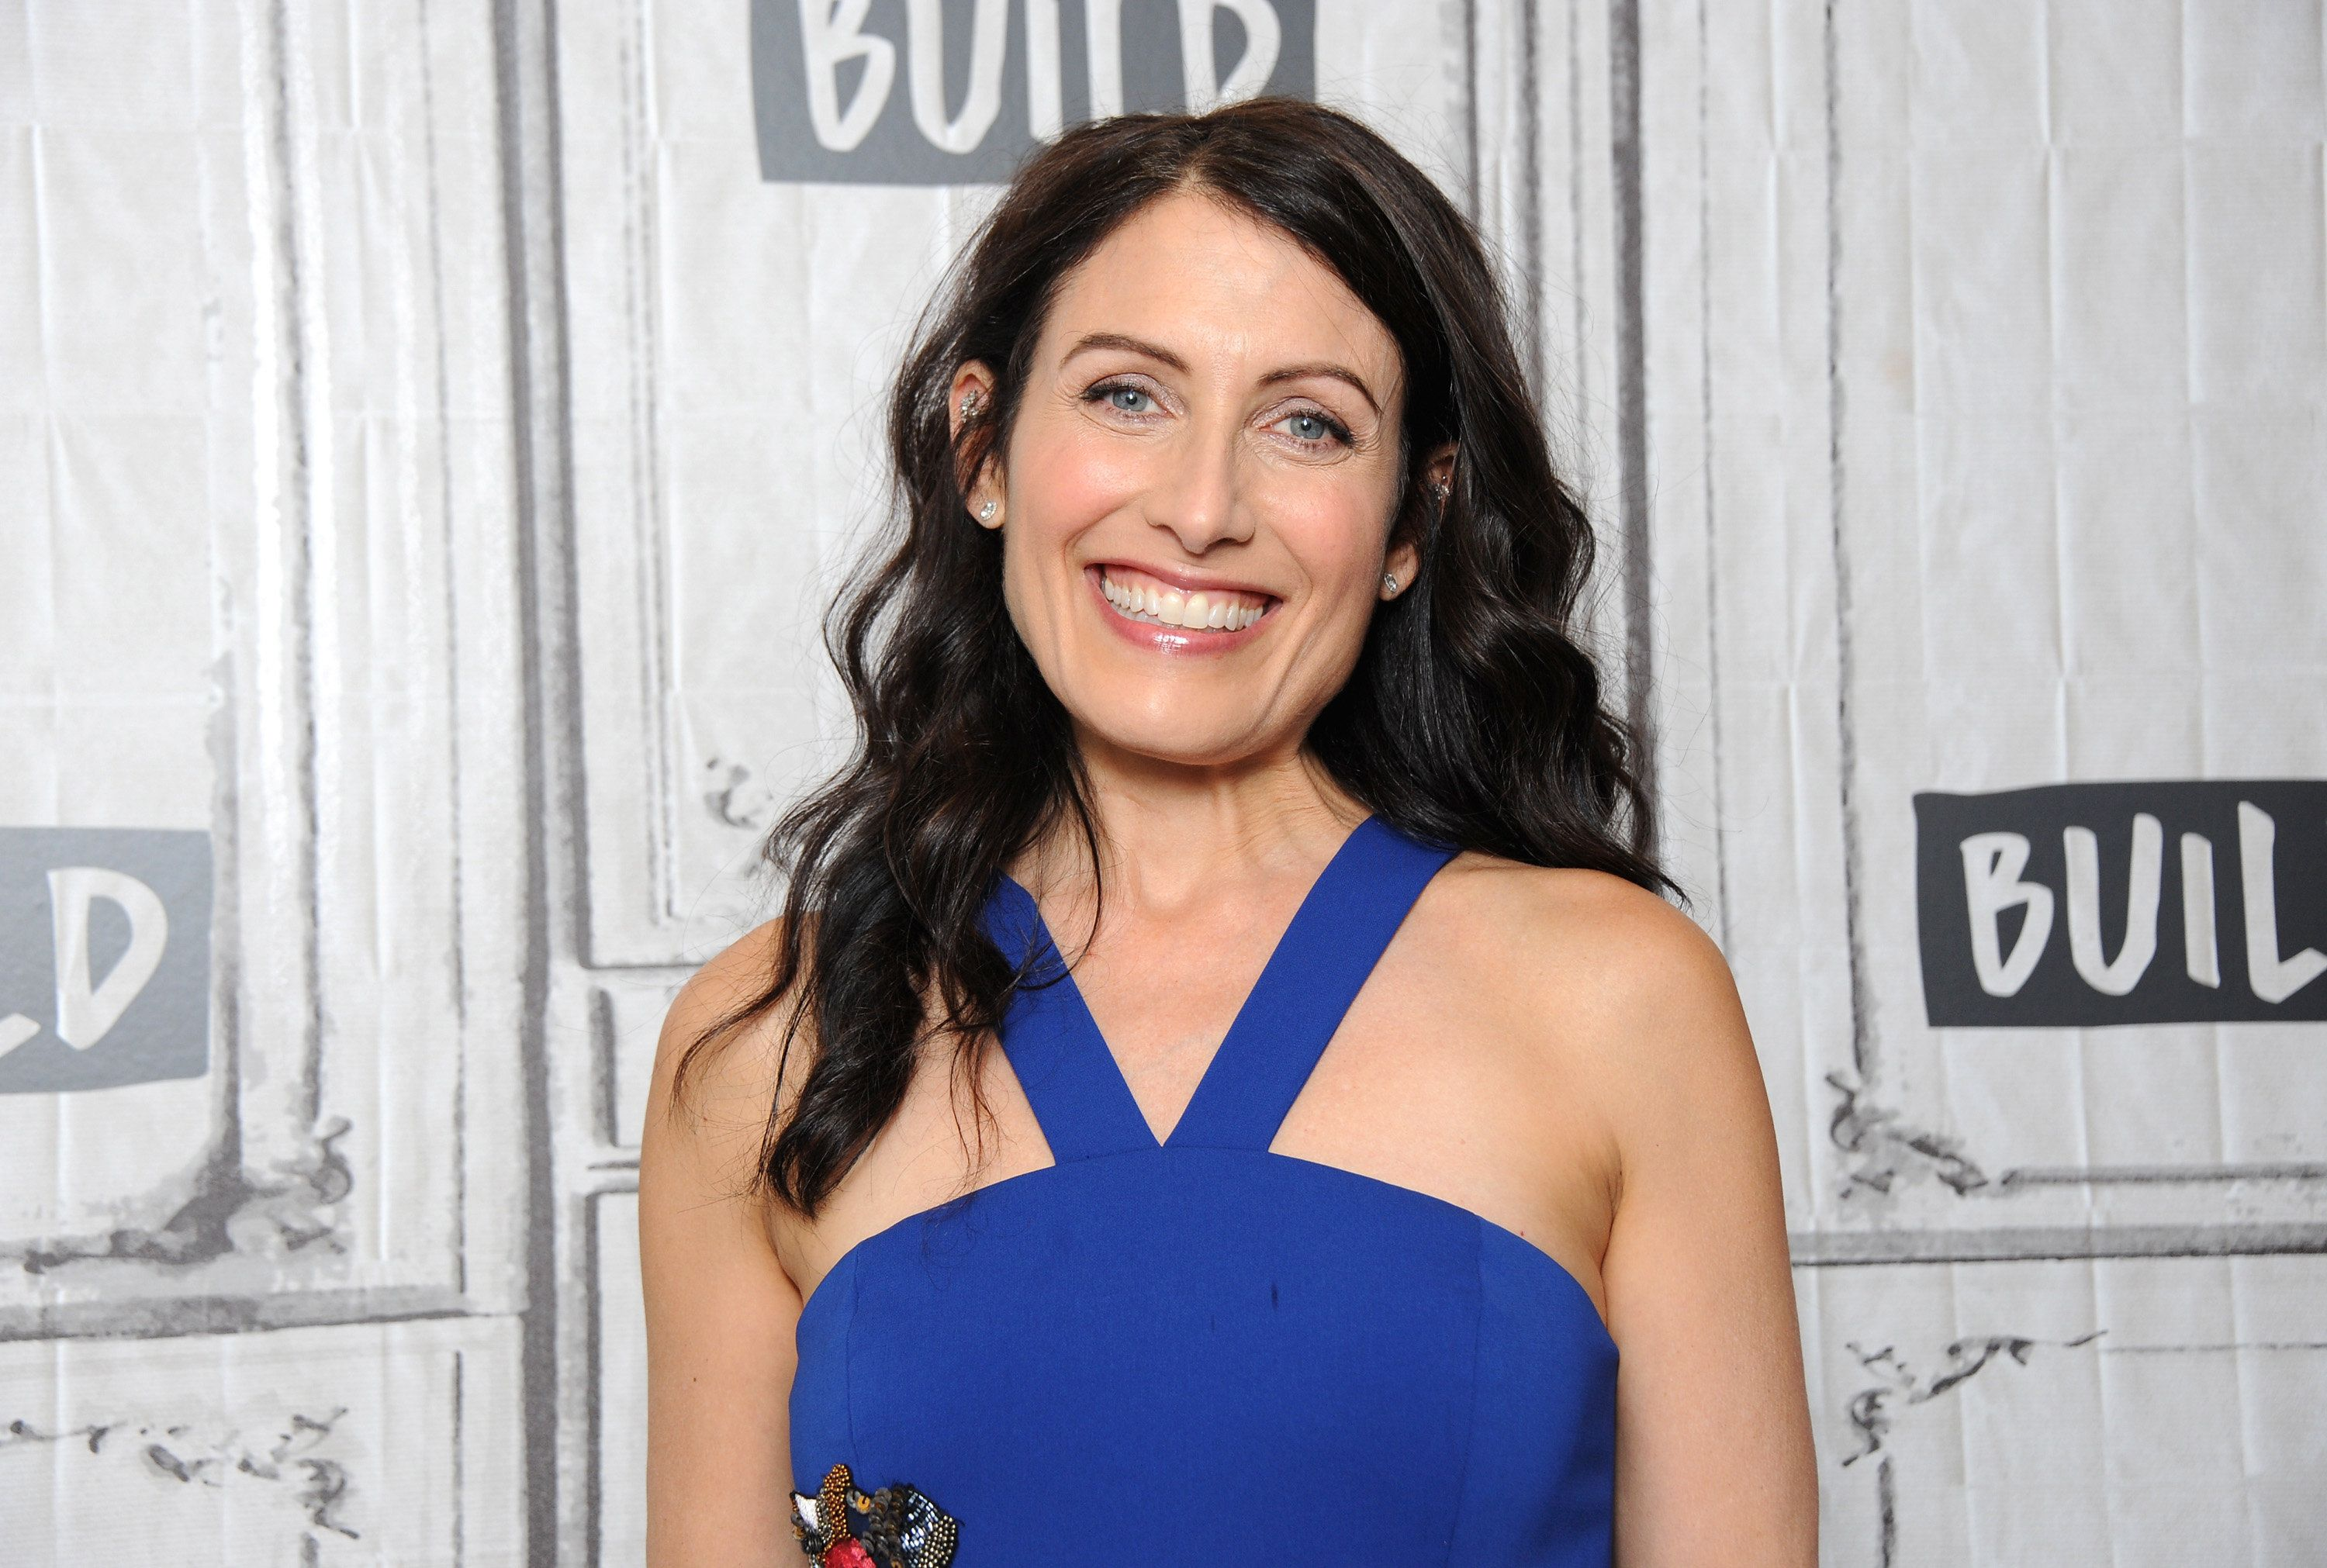 NEW YORK, NY - AUGUST 07: Actress and playwright Lisa Edelstein attends Build to discuss 'Girlfriends' Guide To Divorce' at Build Studio on August 7, 2017 in New York City.  (Photo by Desiree Navarro/WireImage)